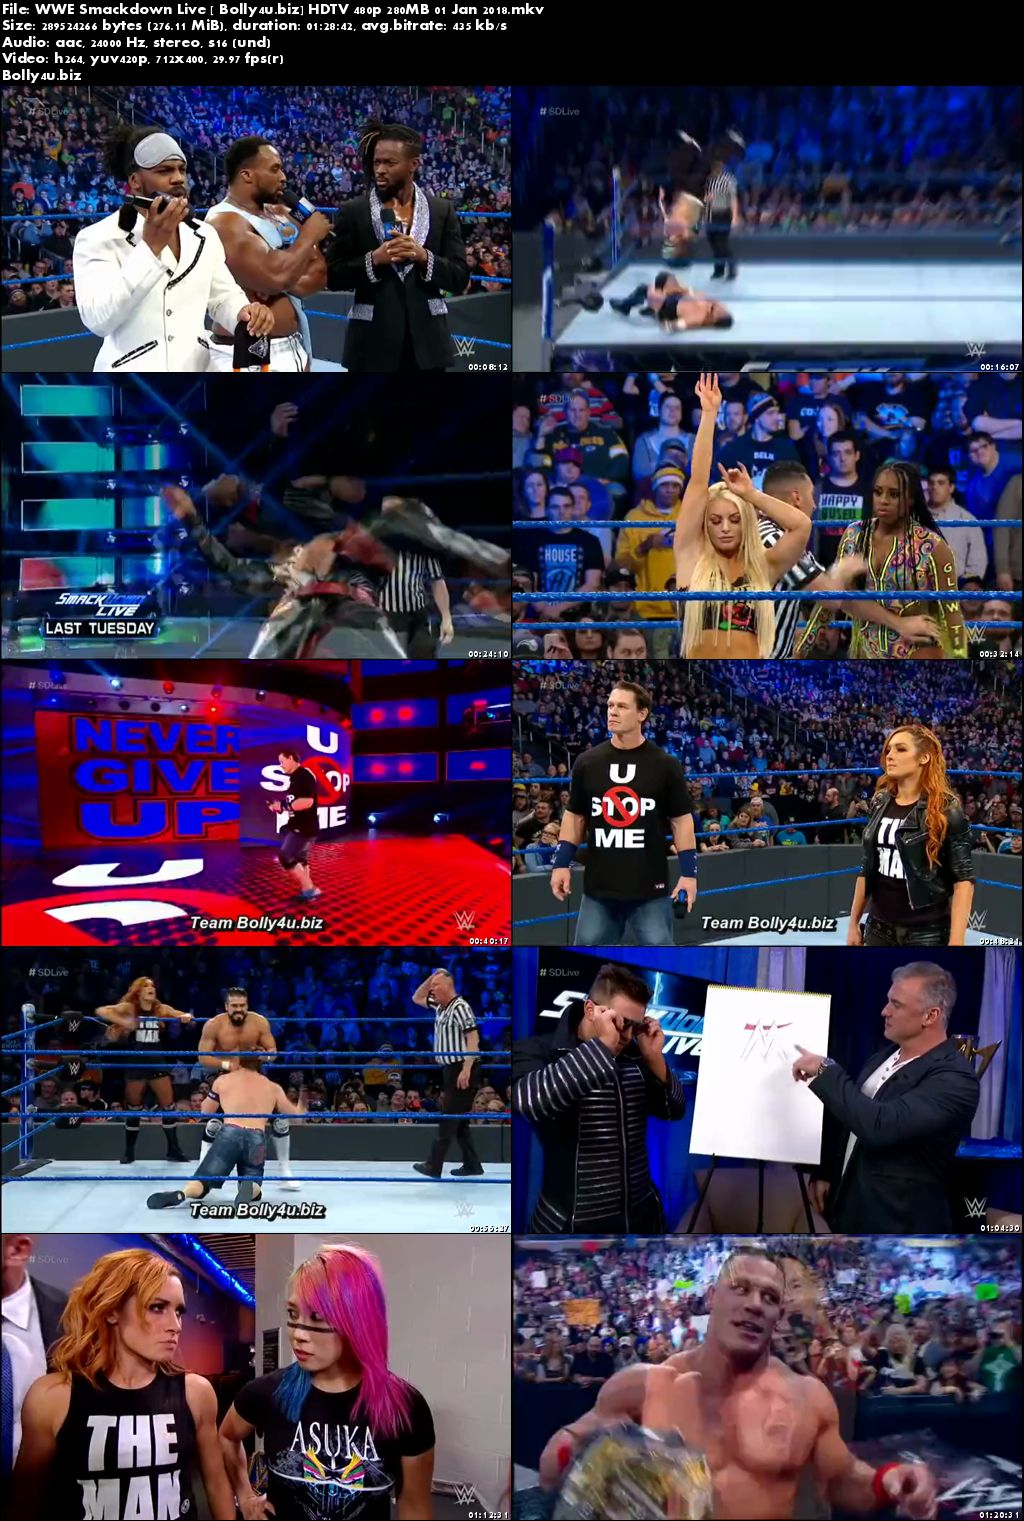 WWE Smackdown Live HDTV 480p 280MB 01 Jan 2018 Download